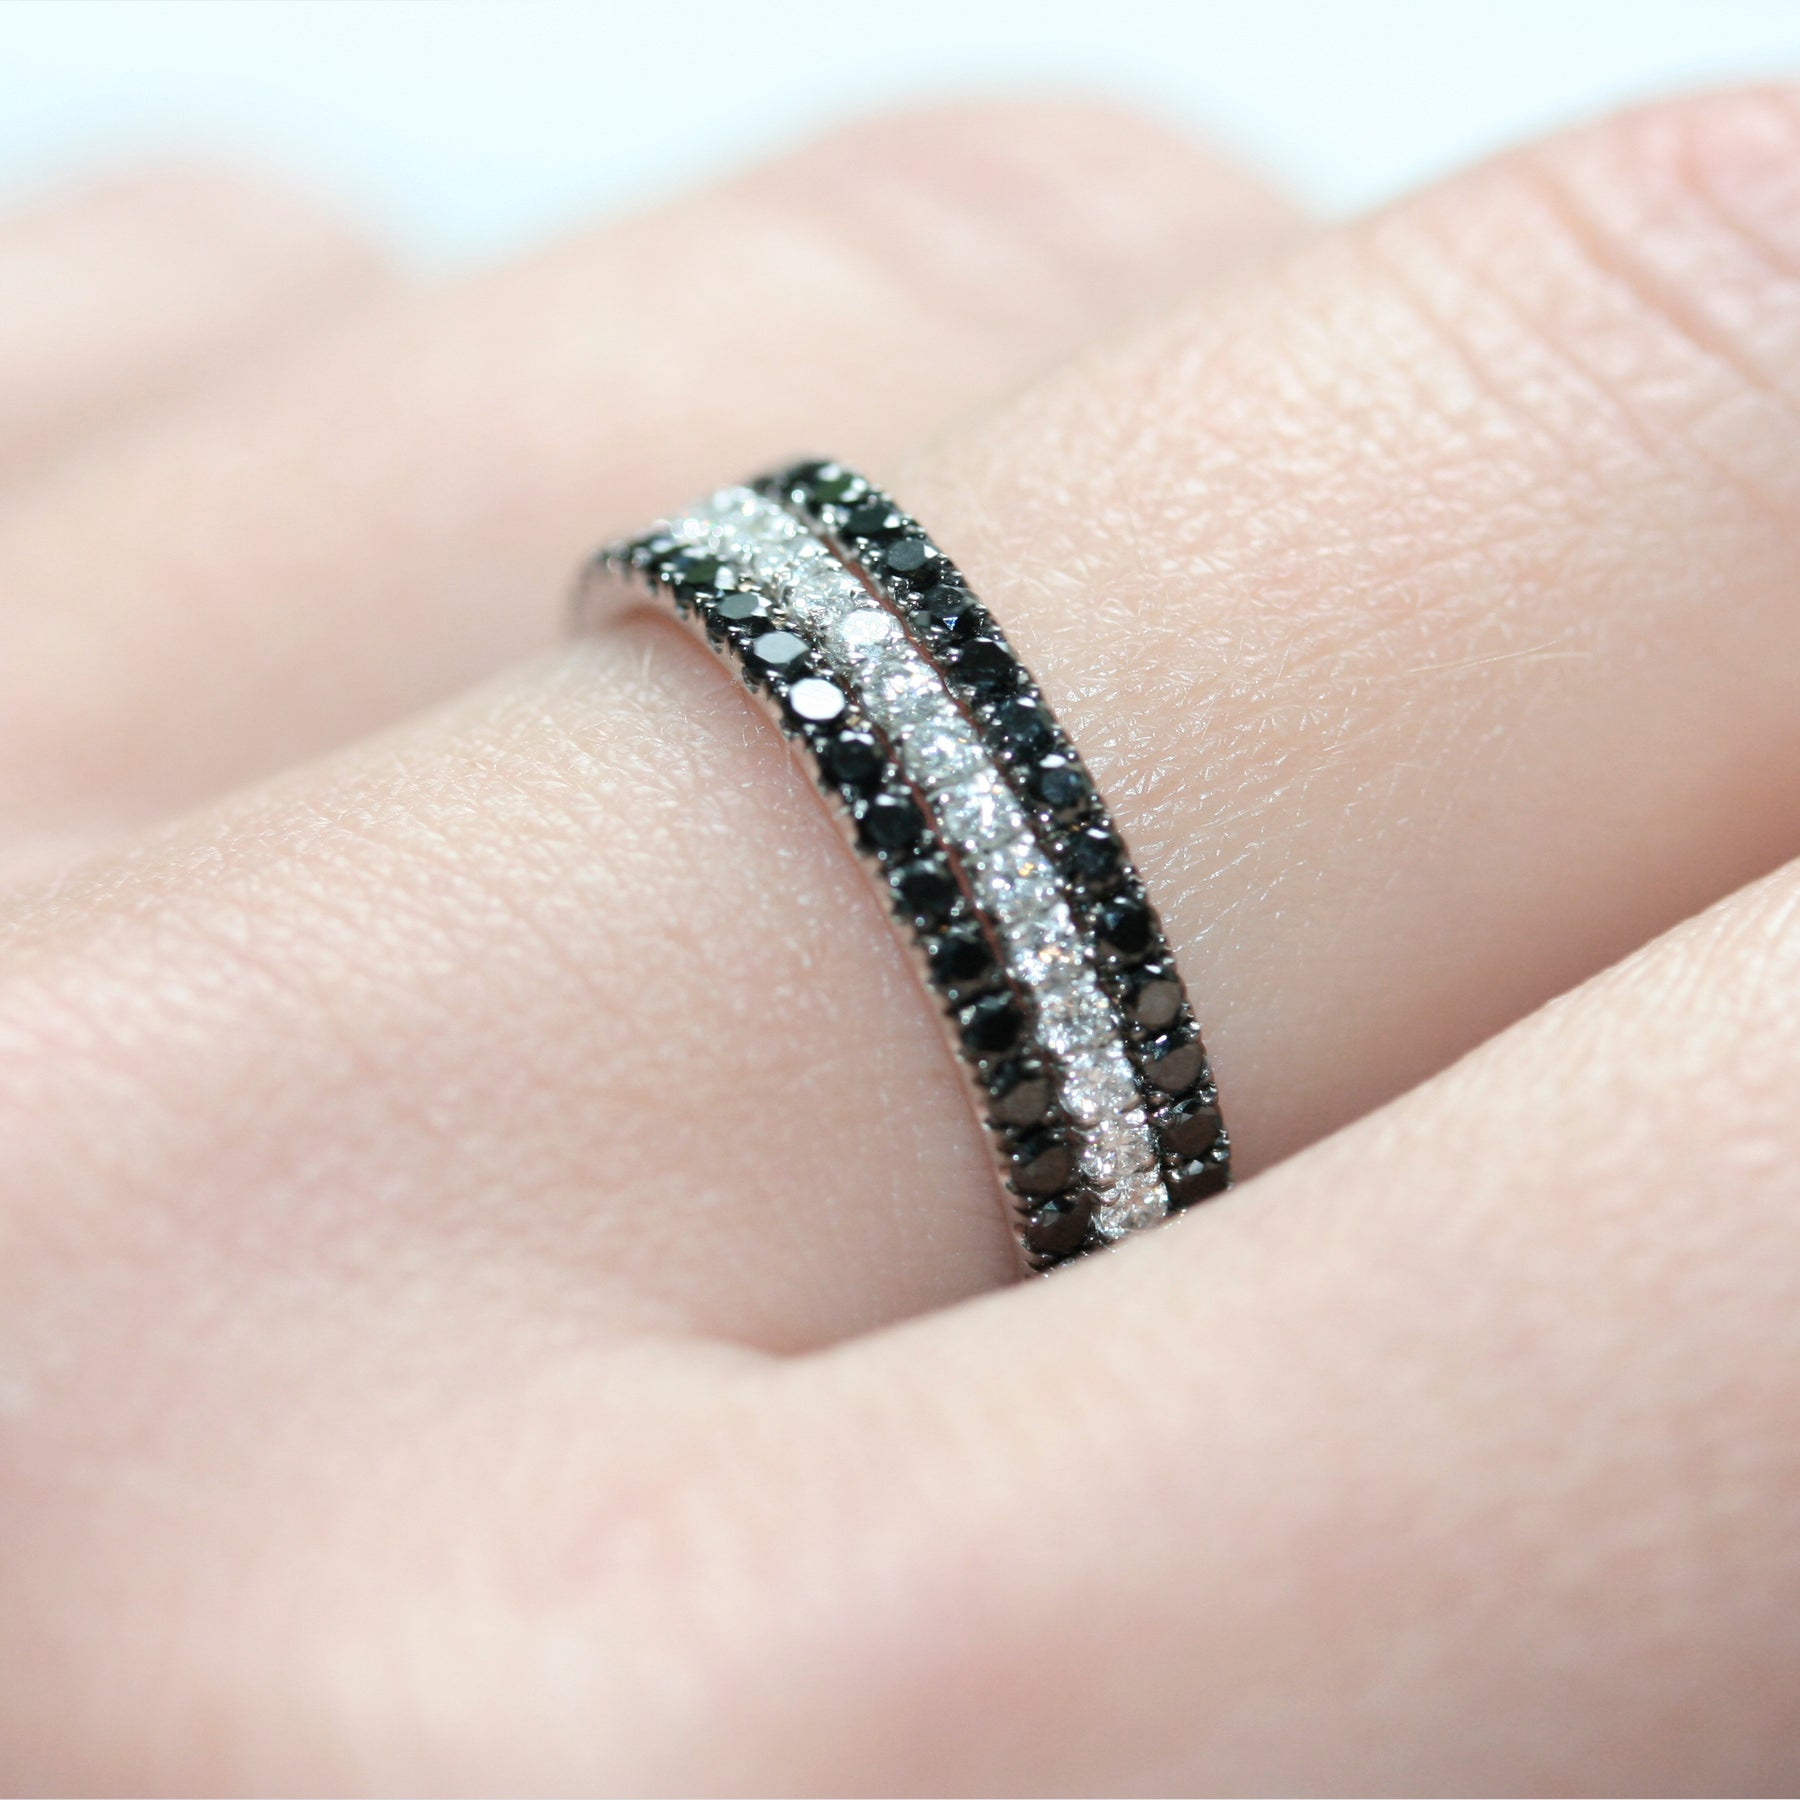 Closeup of a black diamond ring with 18 carat white gold on a lady's hand, as part of a set